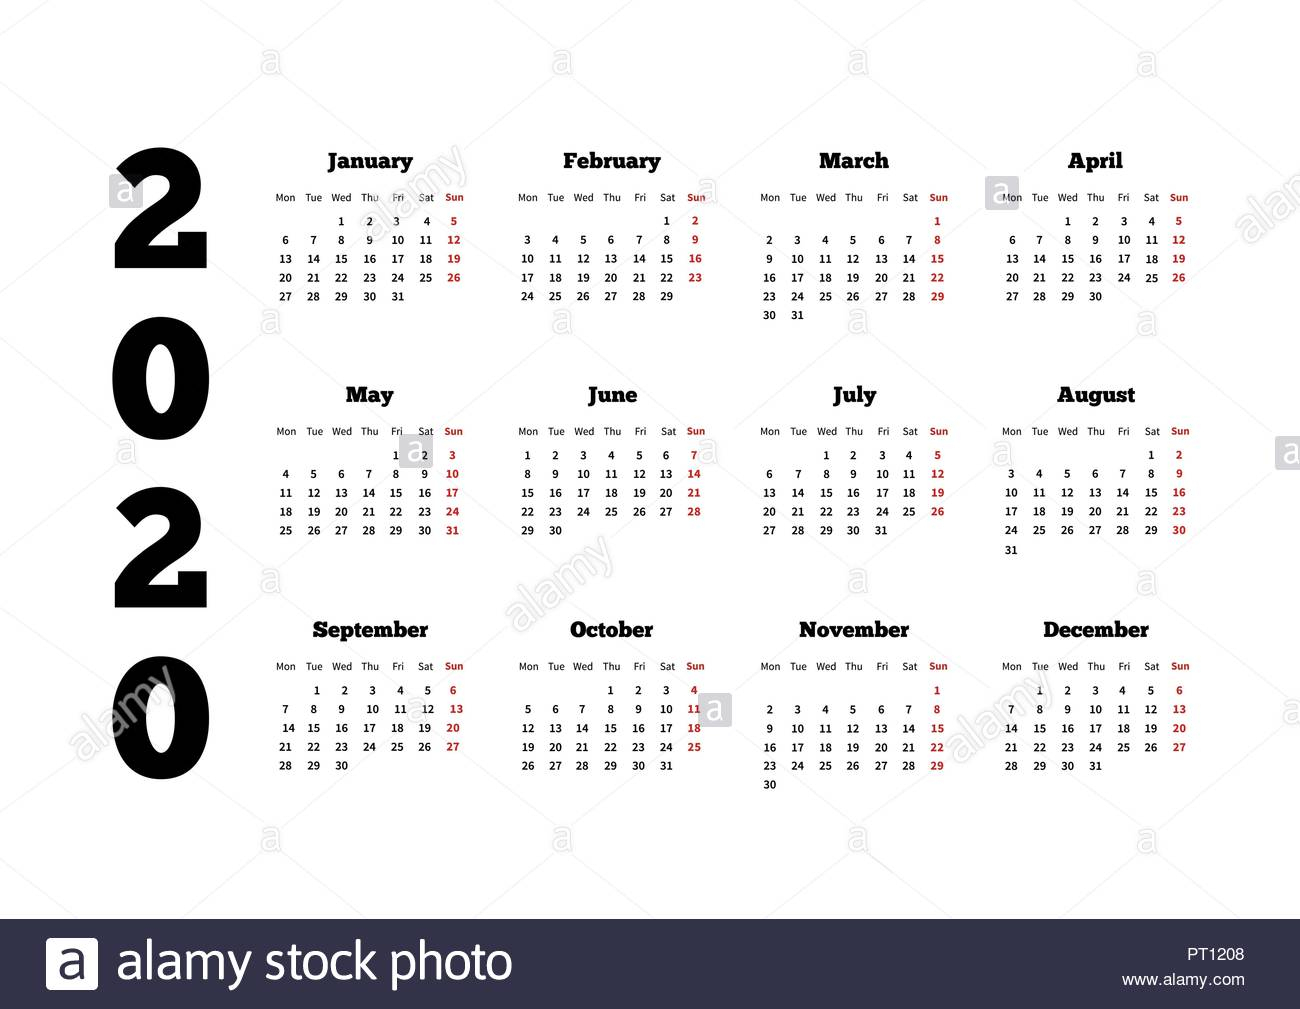 Calendar On 2020 Year With Week Starting From Monday, A4 Sheet Stock inside 2020 Calendar Starting With Monday